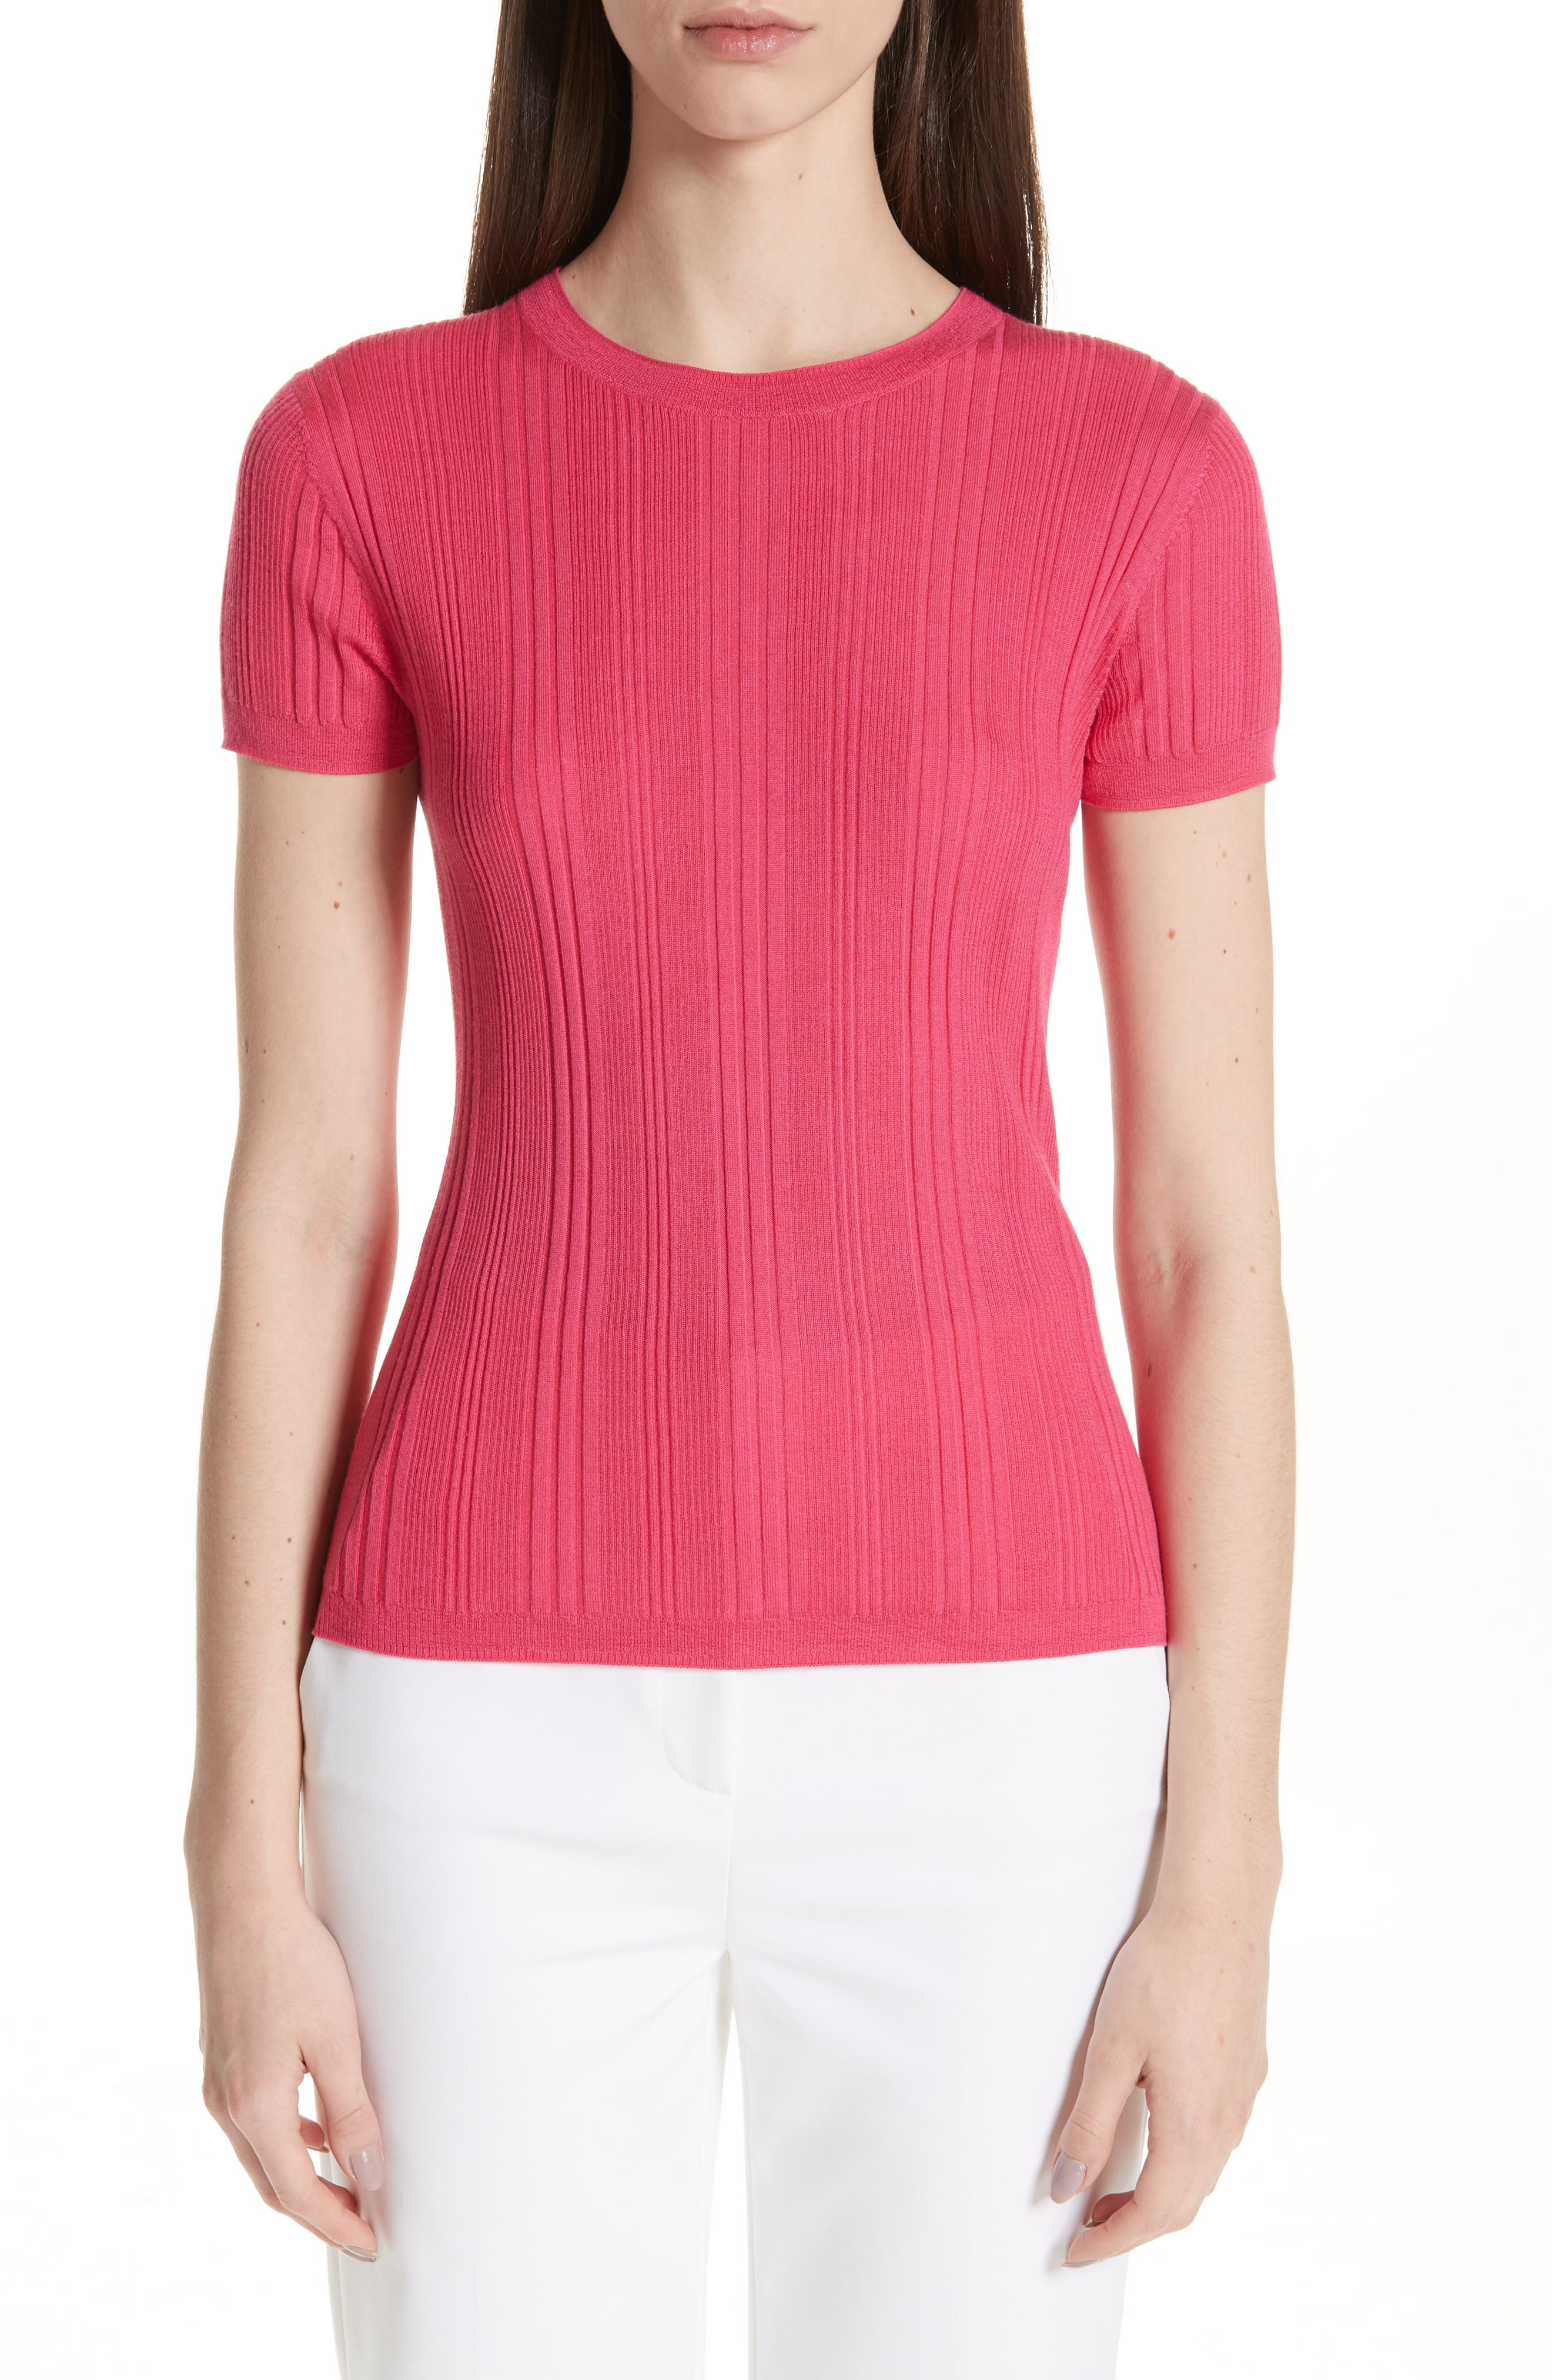 ST. JOHN COLLECTION, Superfine Variegated Rib Sweater, Main thumbnail 1, color, FLAMINGO